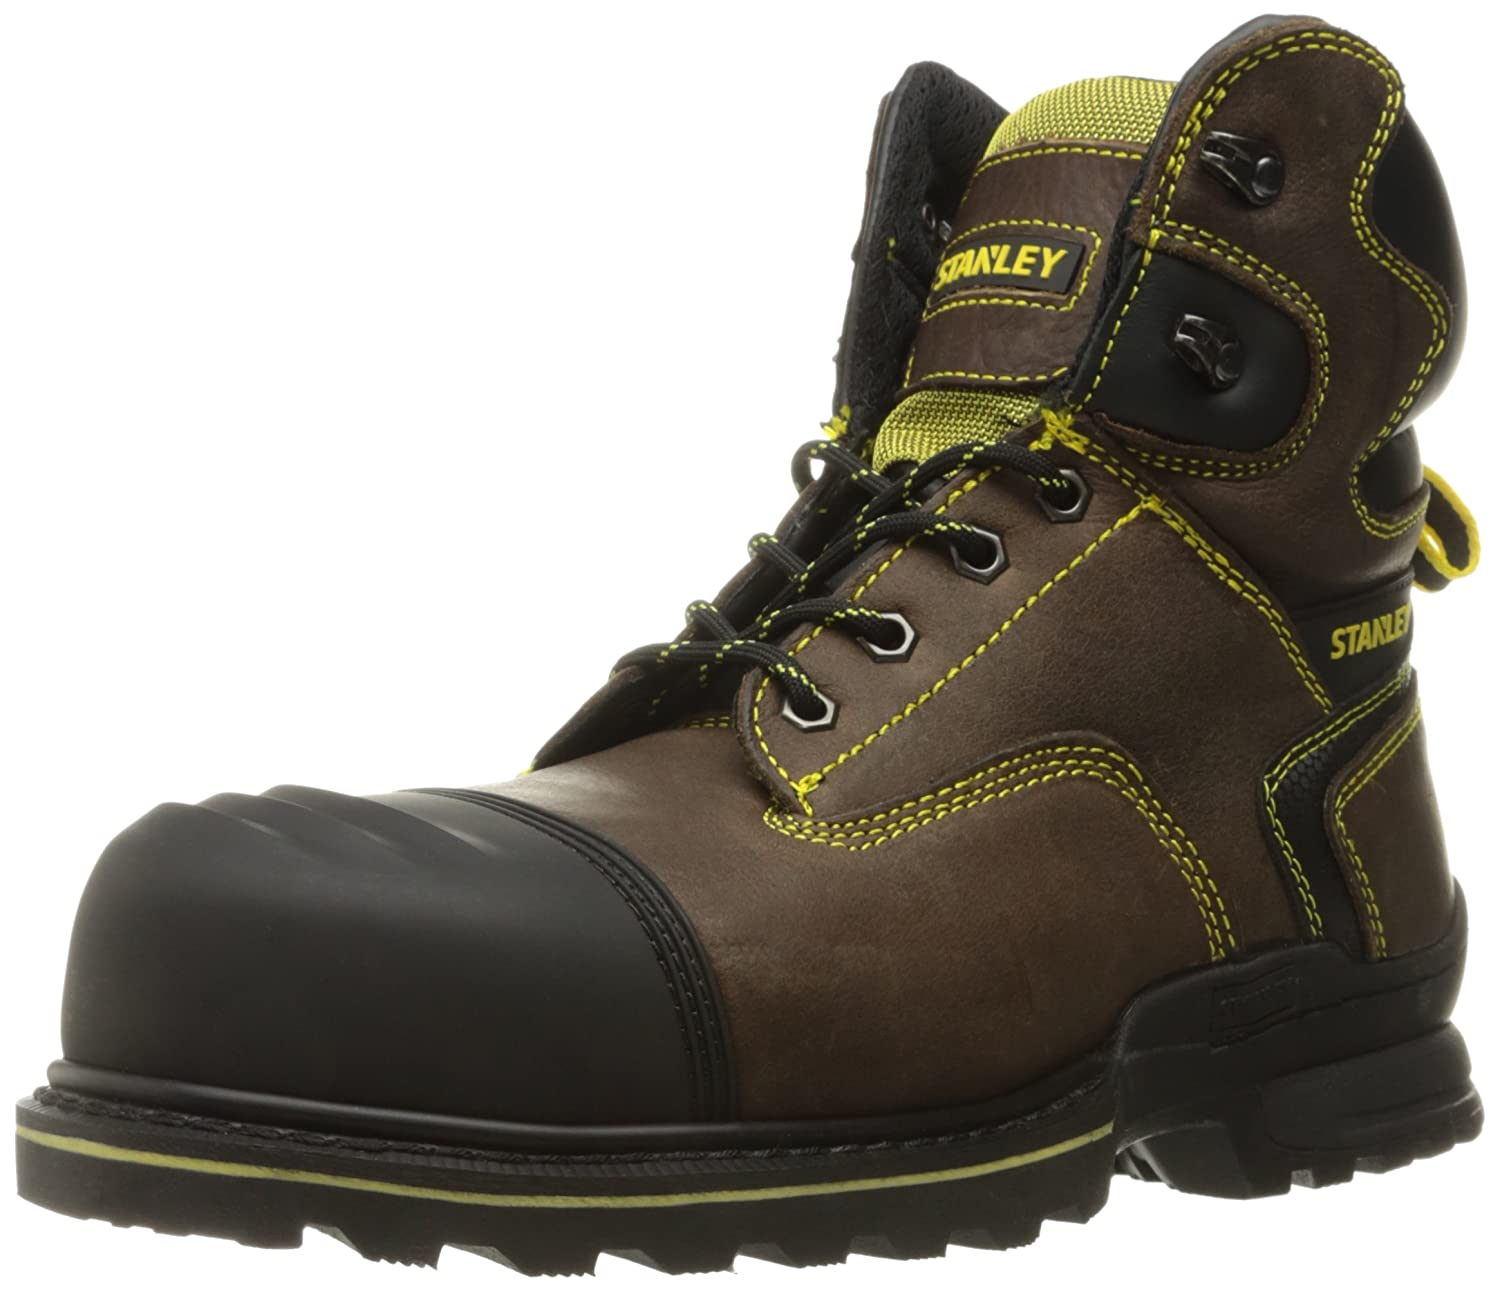 a81a0319620 Stanley Men's Operator Comp Toe Work Boot